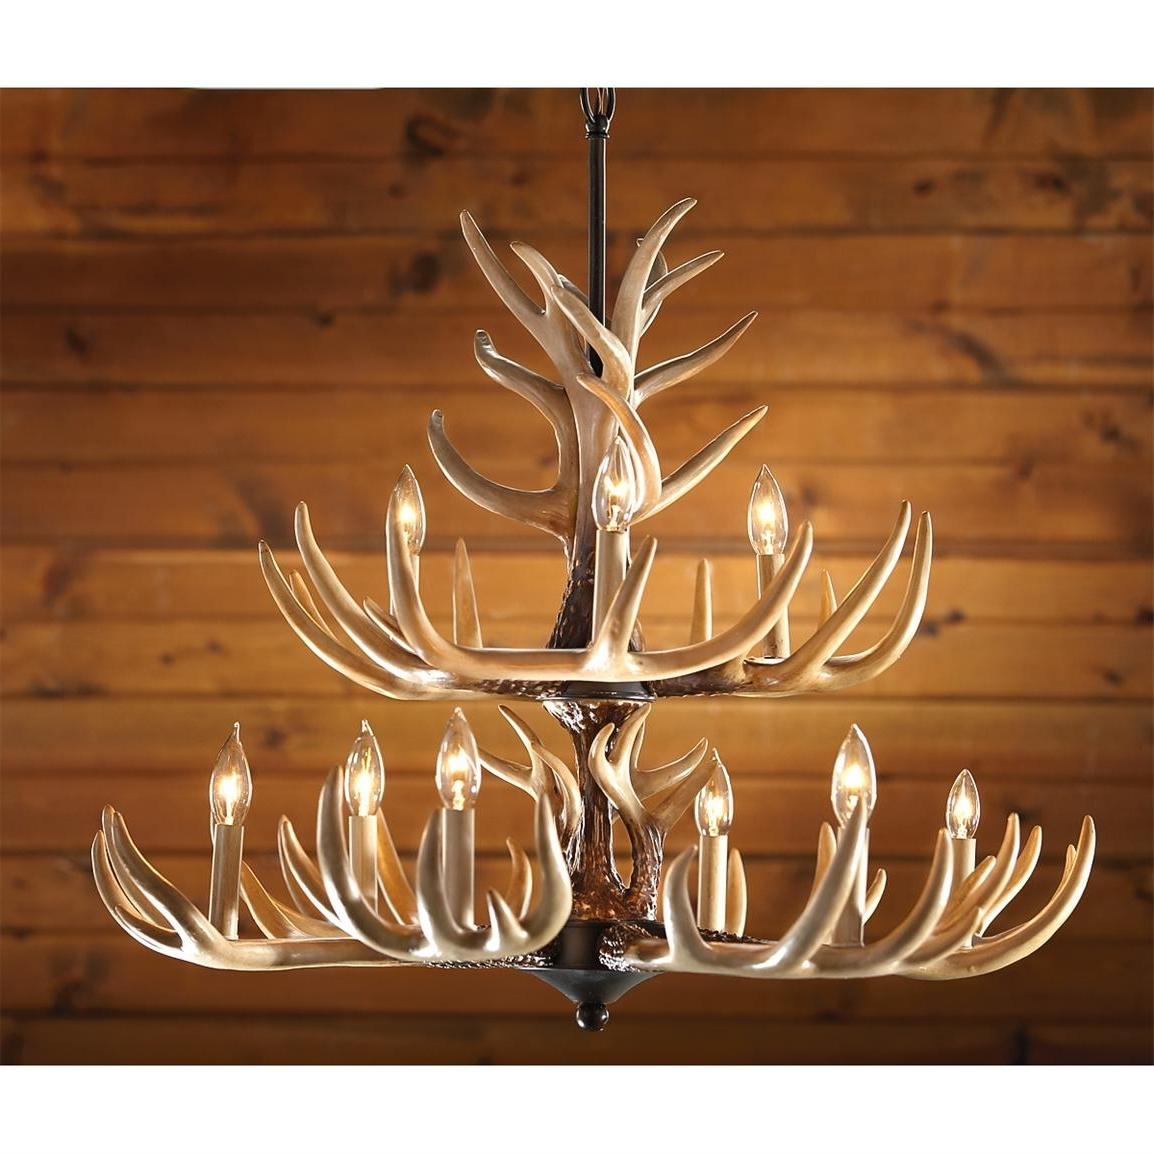 Most Recent Castlecreek 9 Light Whitetail Antler Chandelier – 226093, Lighting Pertaining To Antler Chandeliers And Lighting (View 10 of 15)